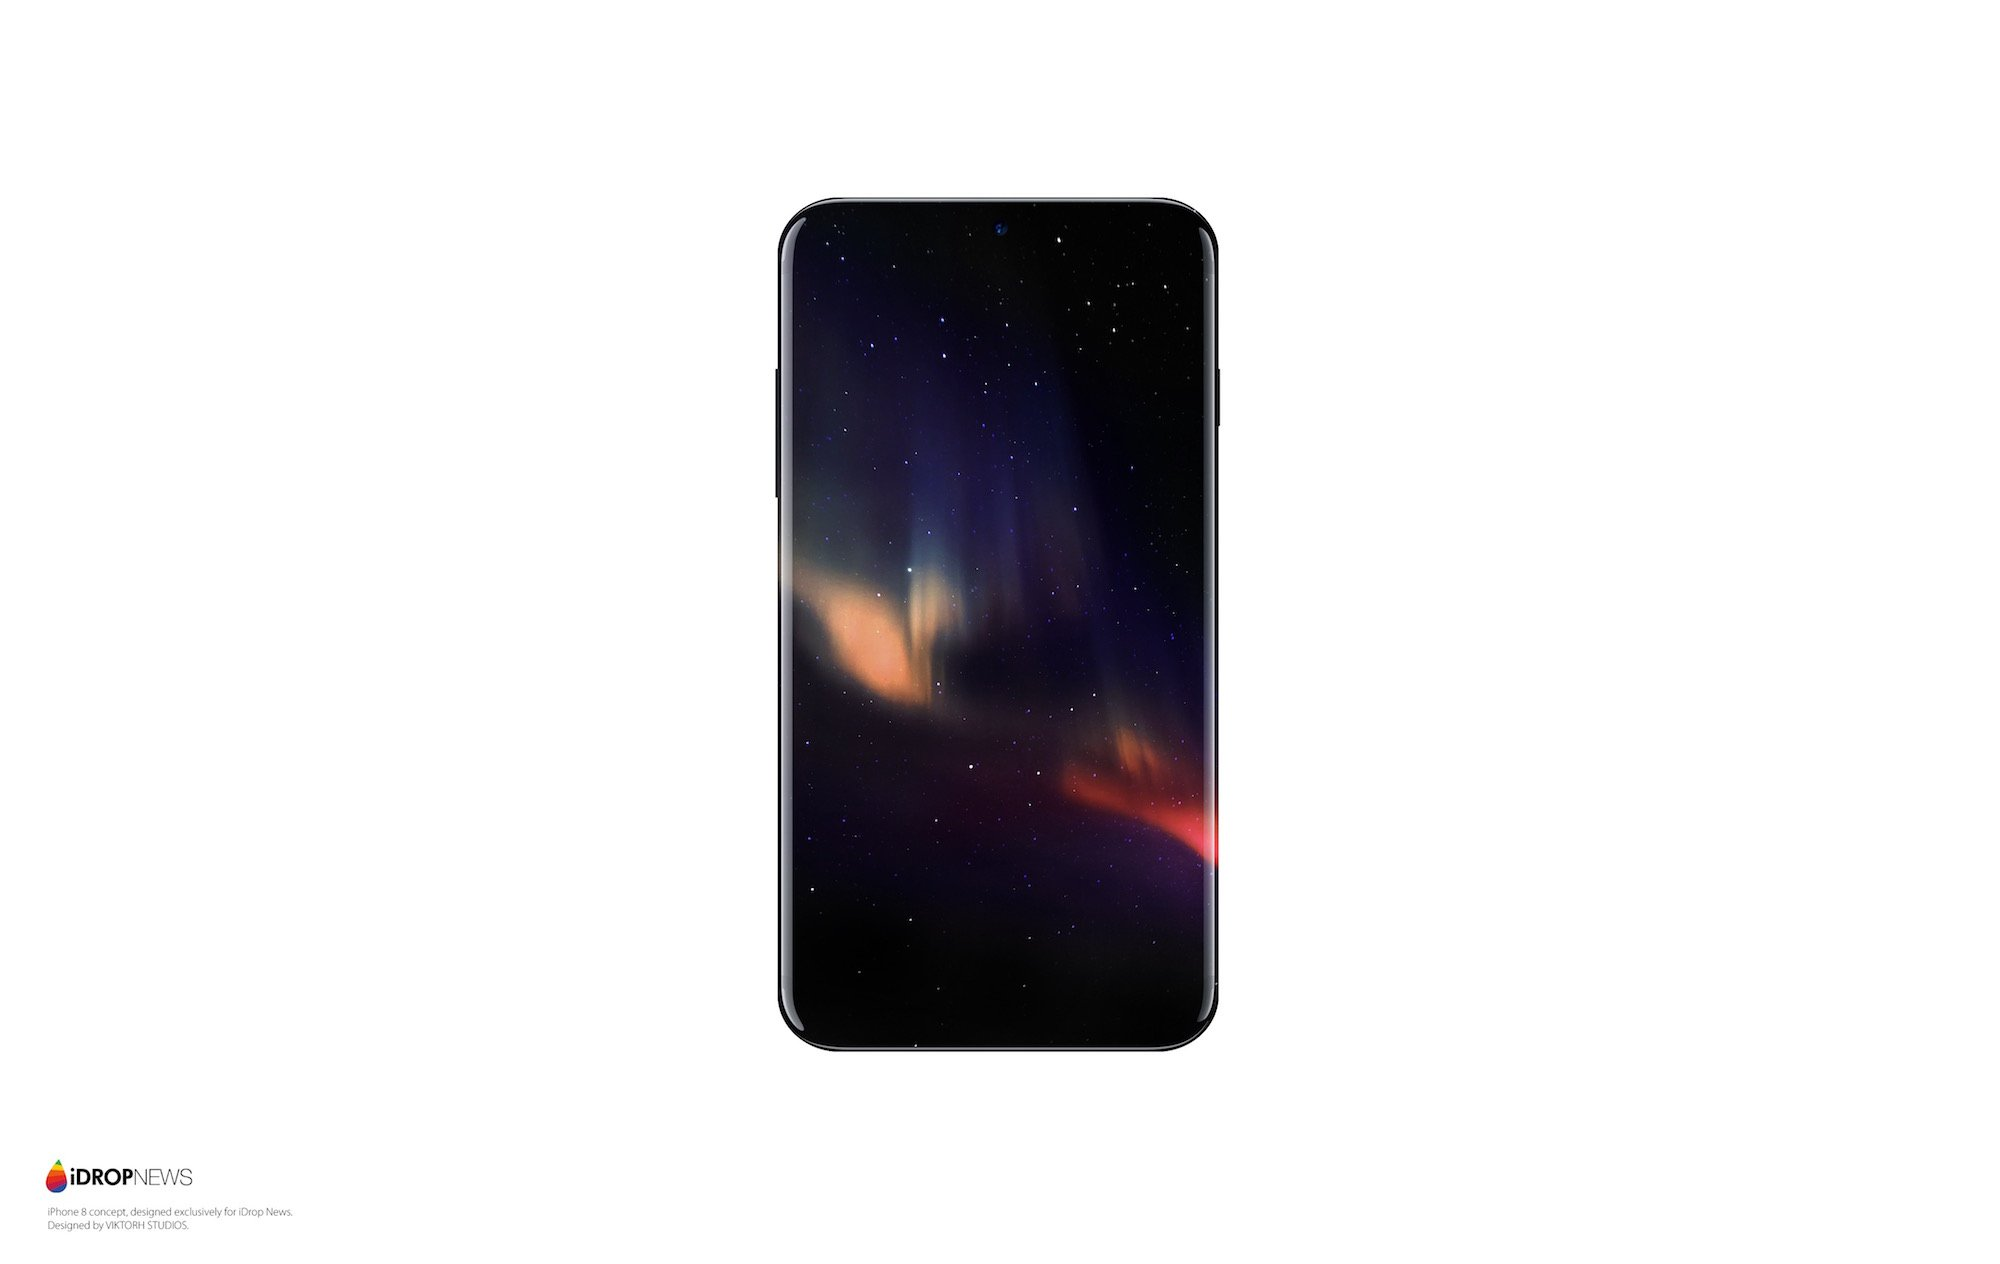 iphone-8-concept-design-no-frame_10